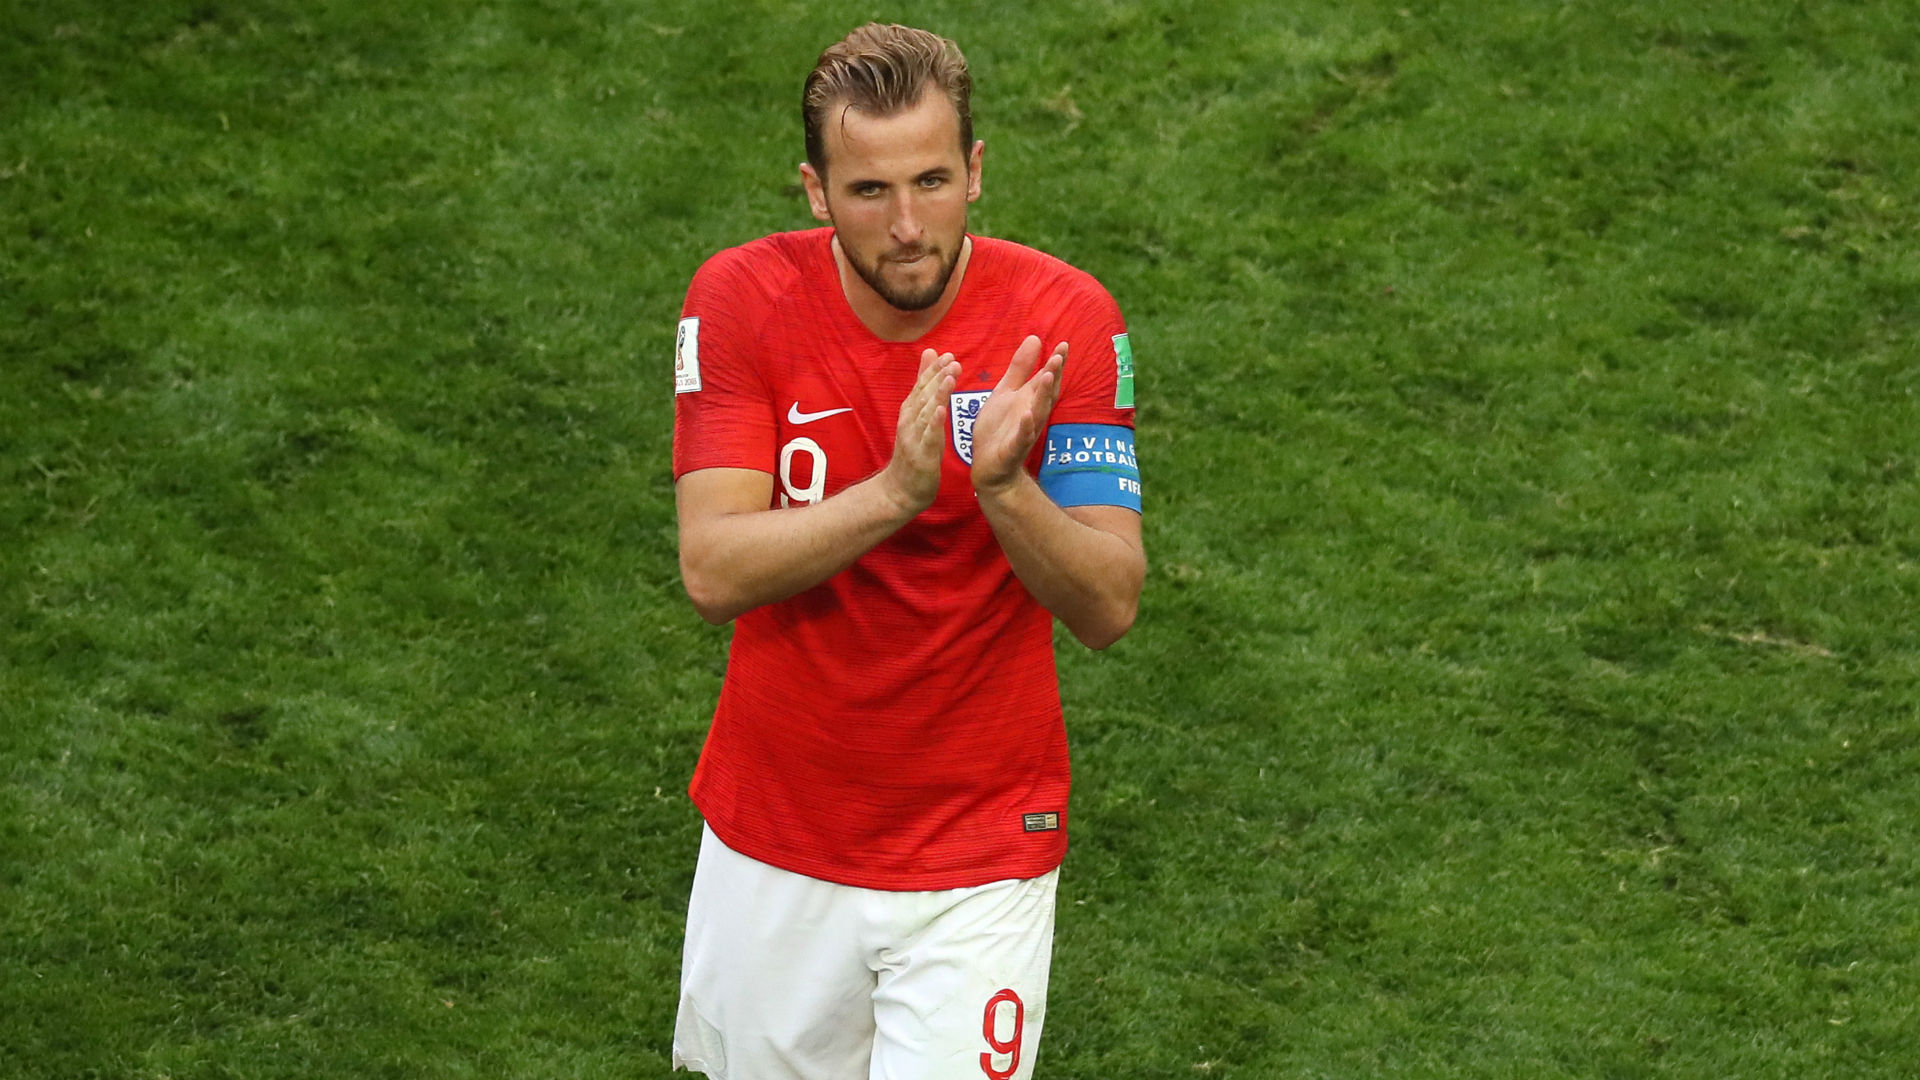 Kane disappointed by World Cup despite Golden Boot - Pochettino